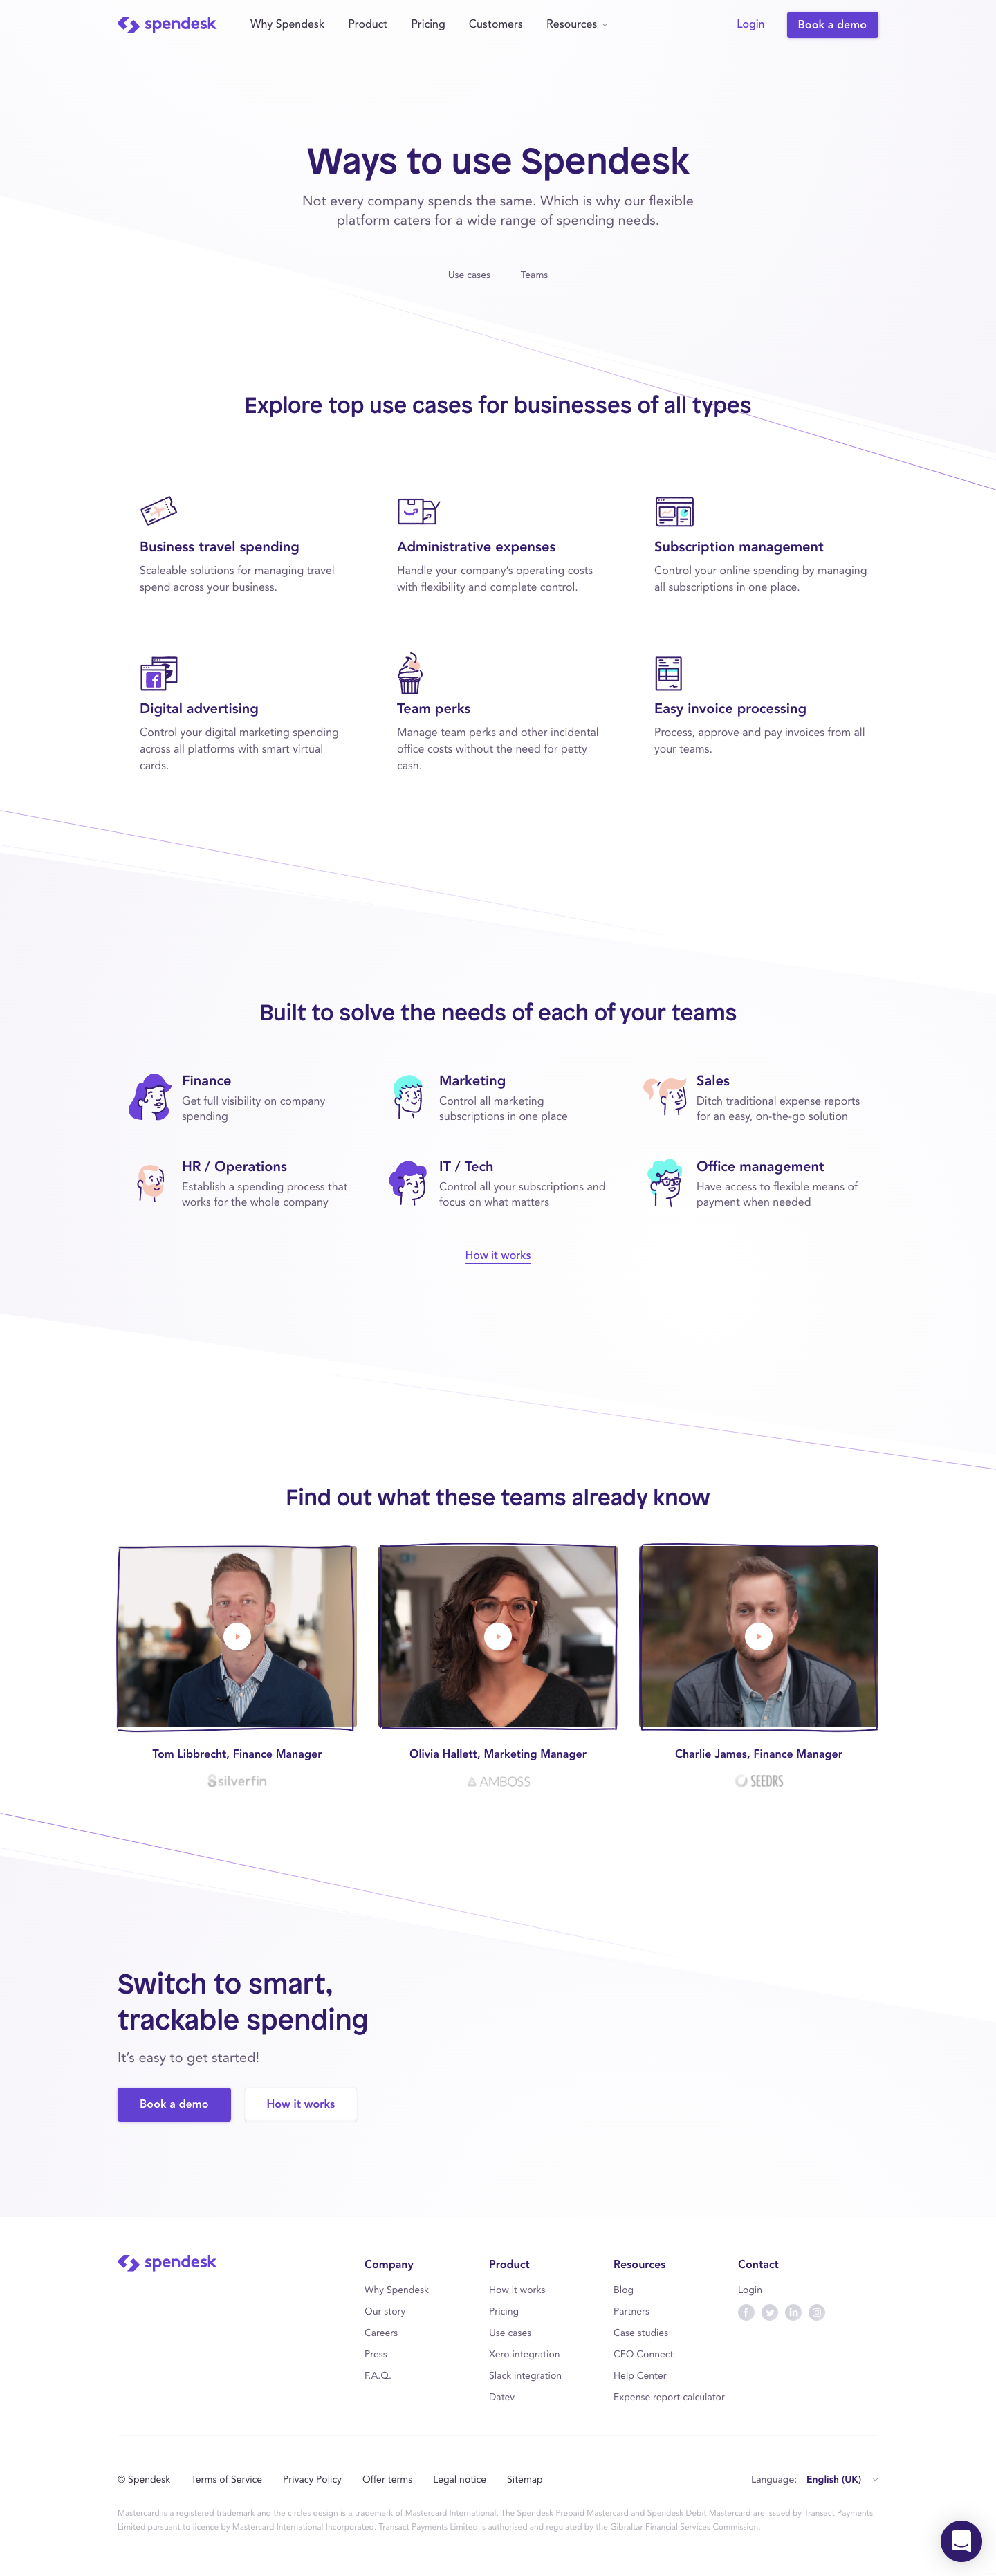 Spendesk's Use cases